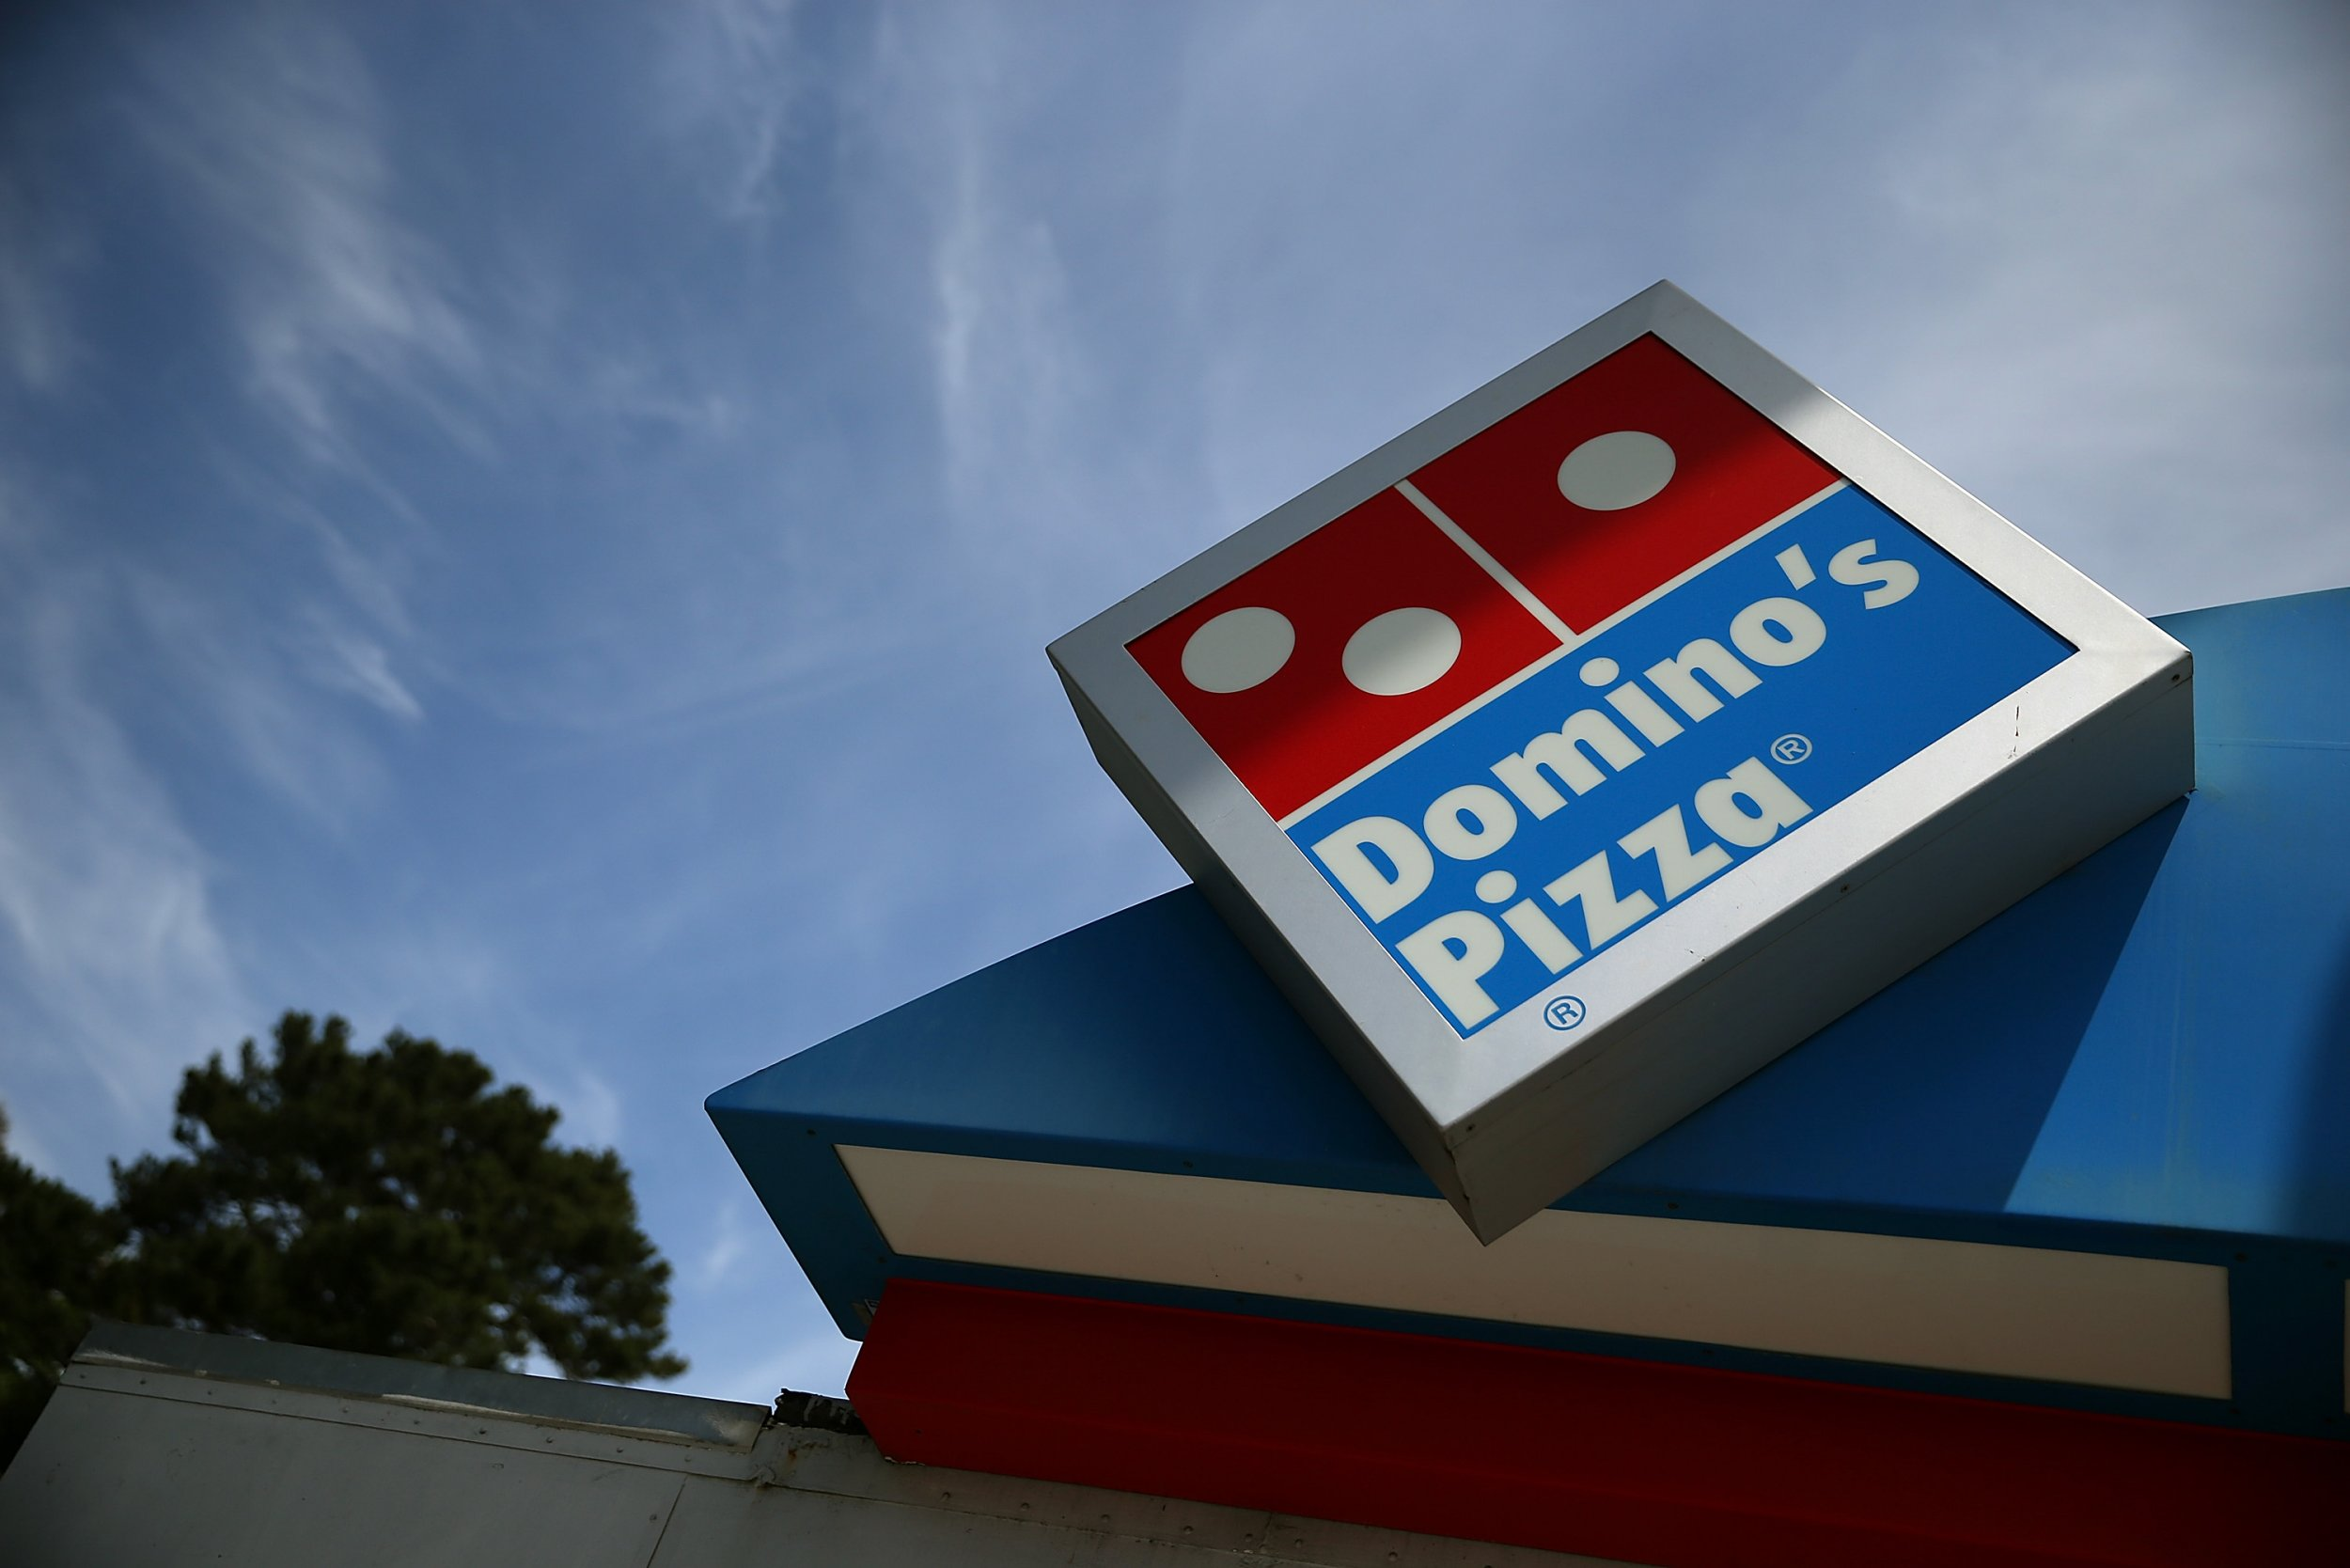 Domino's Worker Attacks Fellow Colleague Over 'Endgame' Spoilers